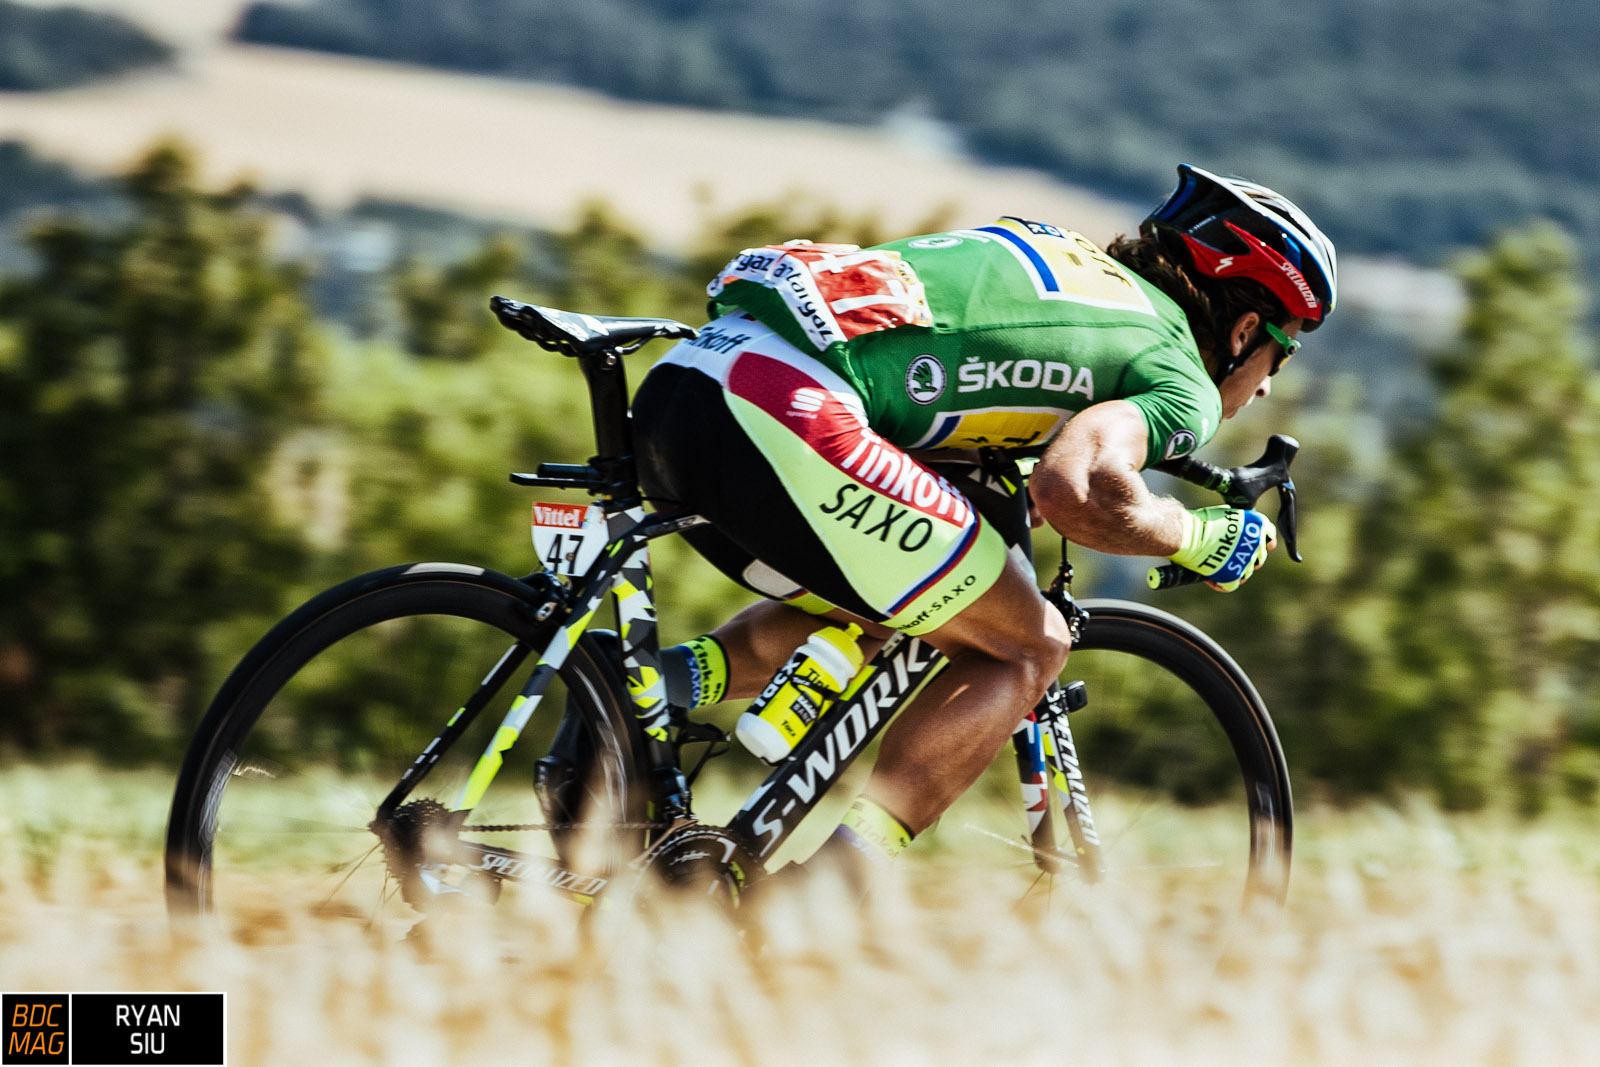 [Video] La fantastica discesa di Sagan, 16a tappa Tour 2015